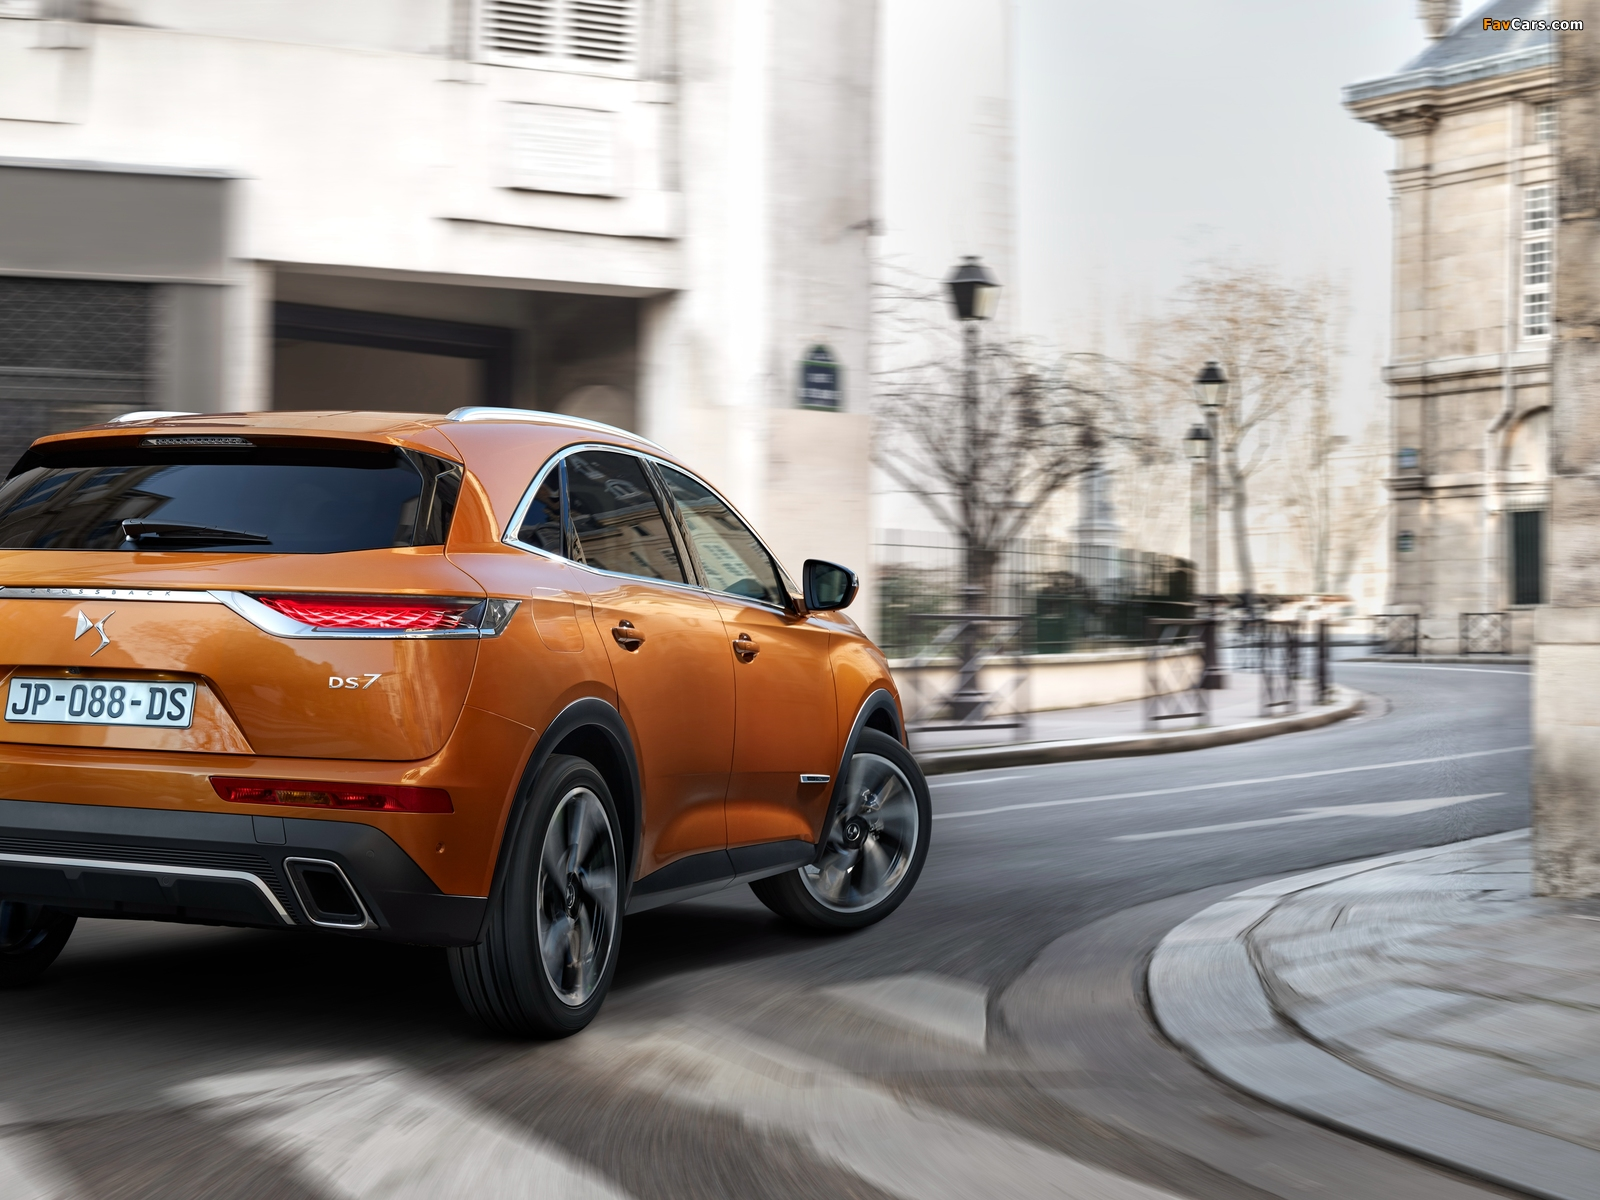 DS 7 Crossback (X74) 2017 pictures (1600 x 1200)